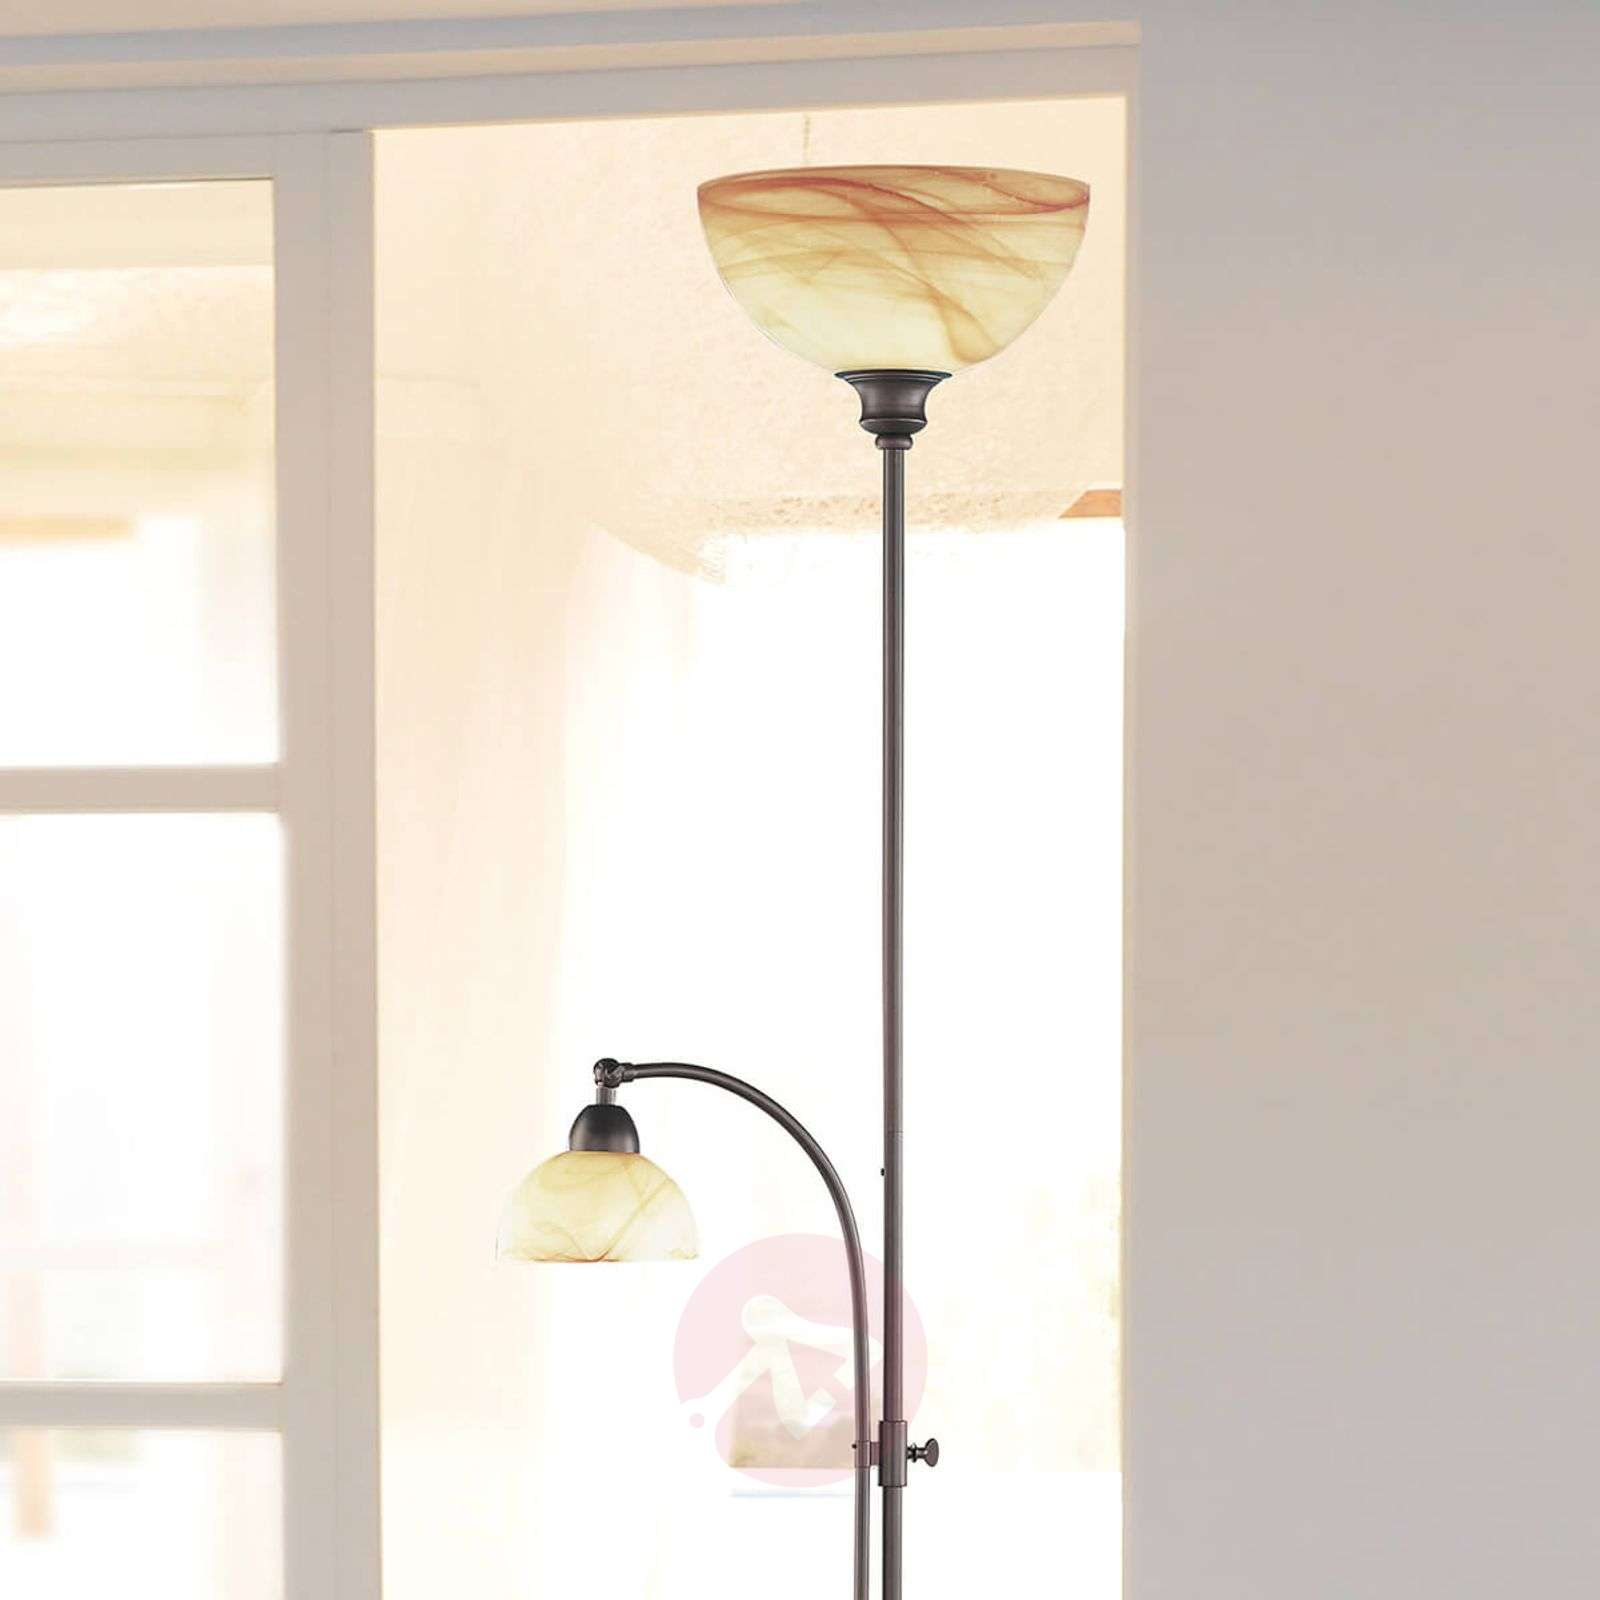 Lacchino floor lamp with foot dimmer-9650219-01